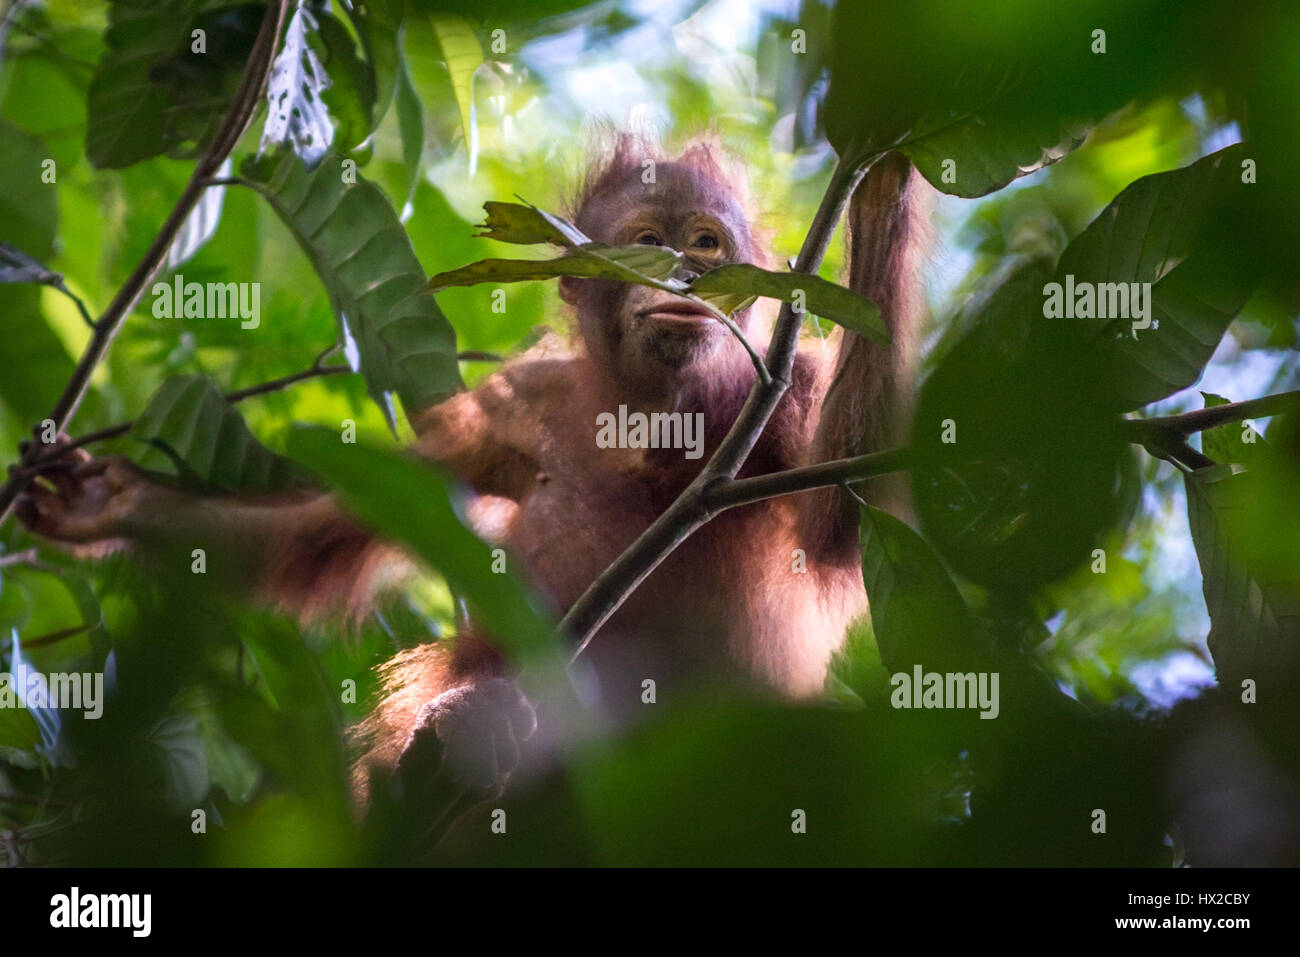 Baby Bornean orangutan searching for foods. - Stock Image